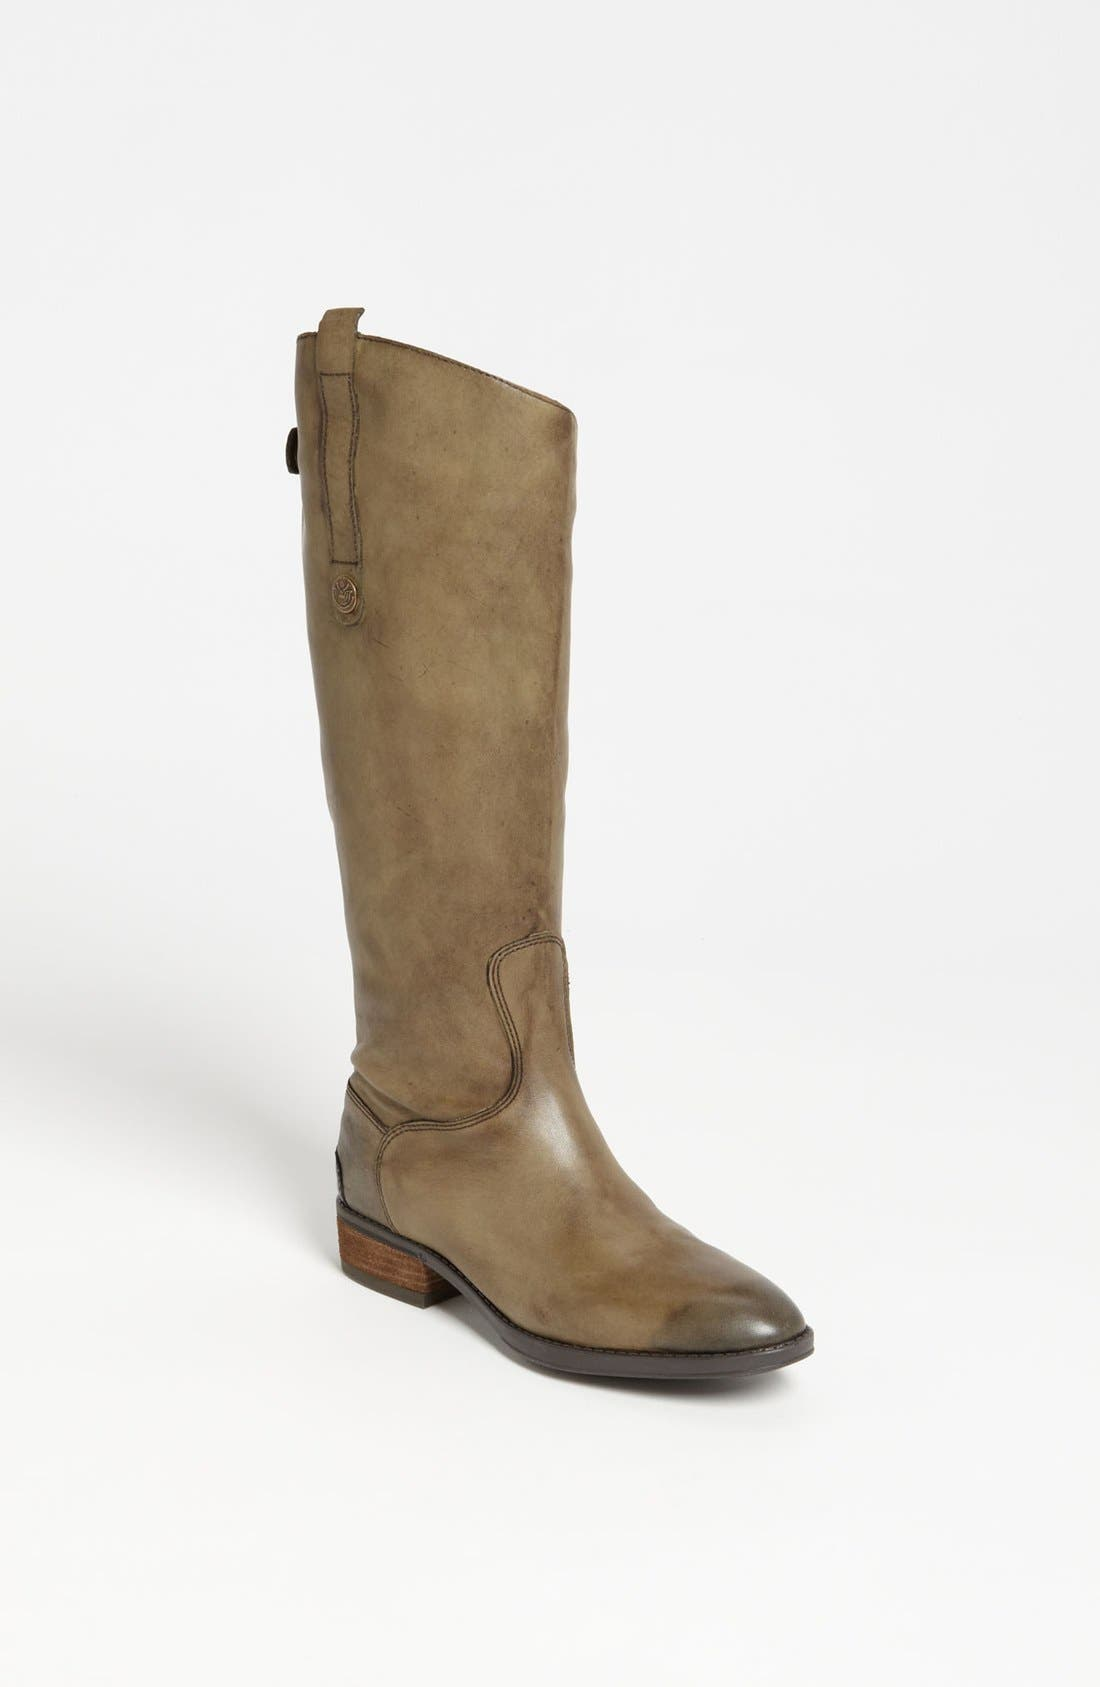 Alternate Image 1 Selected - Sam Edelman 'Penny' Boot (Wide Calf) (Women)